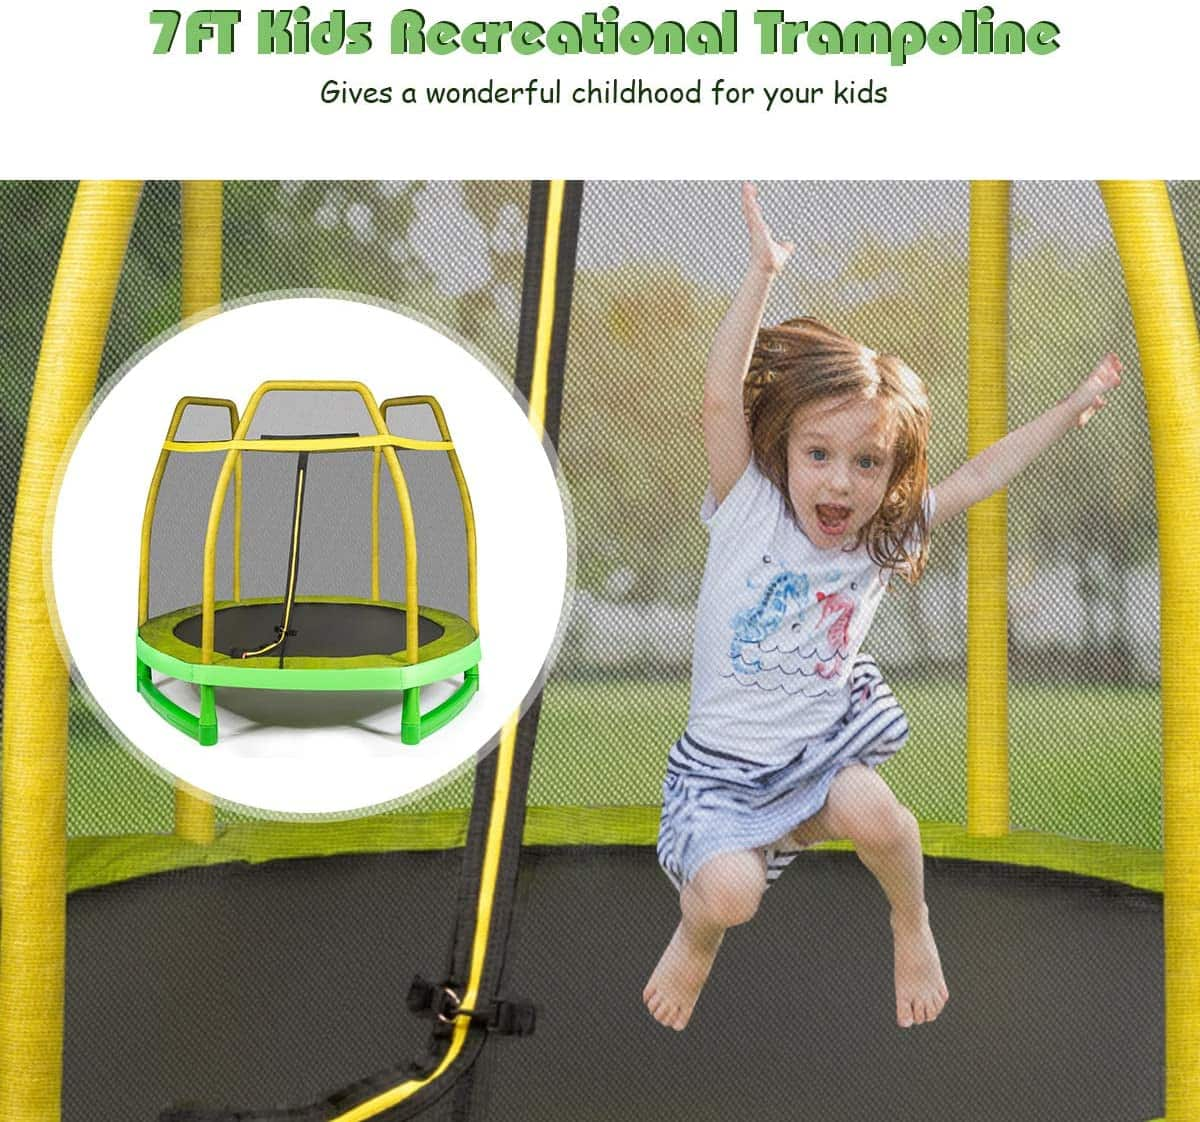 This is an image of Giantex 7 Ft Kids Trampoline w/Safety Enclosure Net